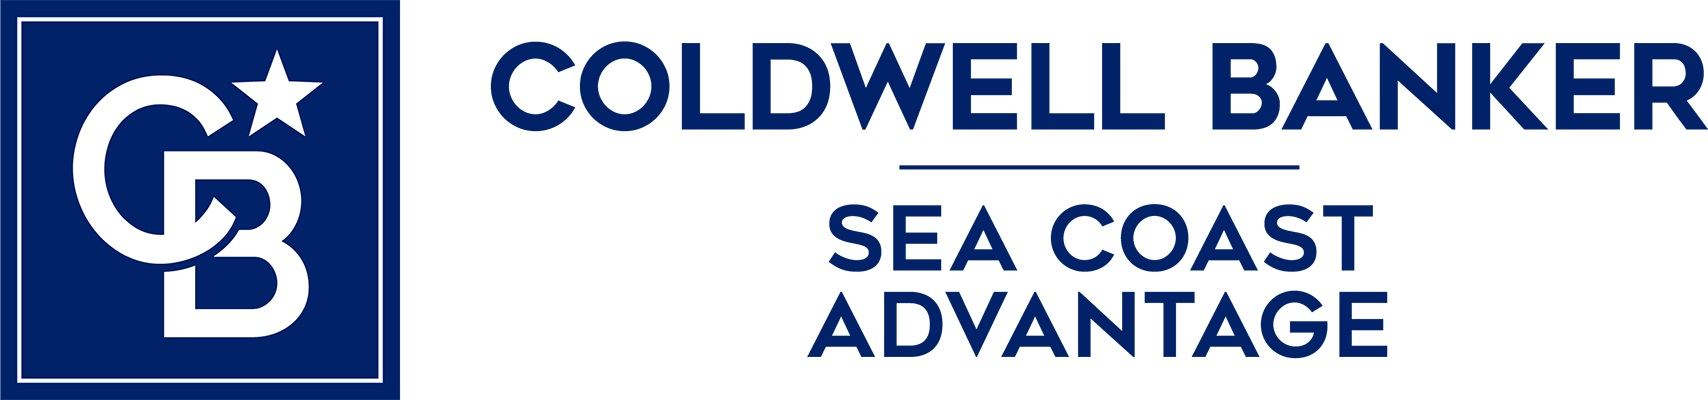 Jim Watson - Coldwell Banker Sea Coast Advantage Realty